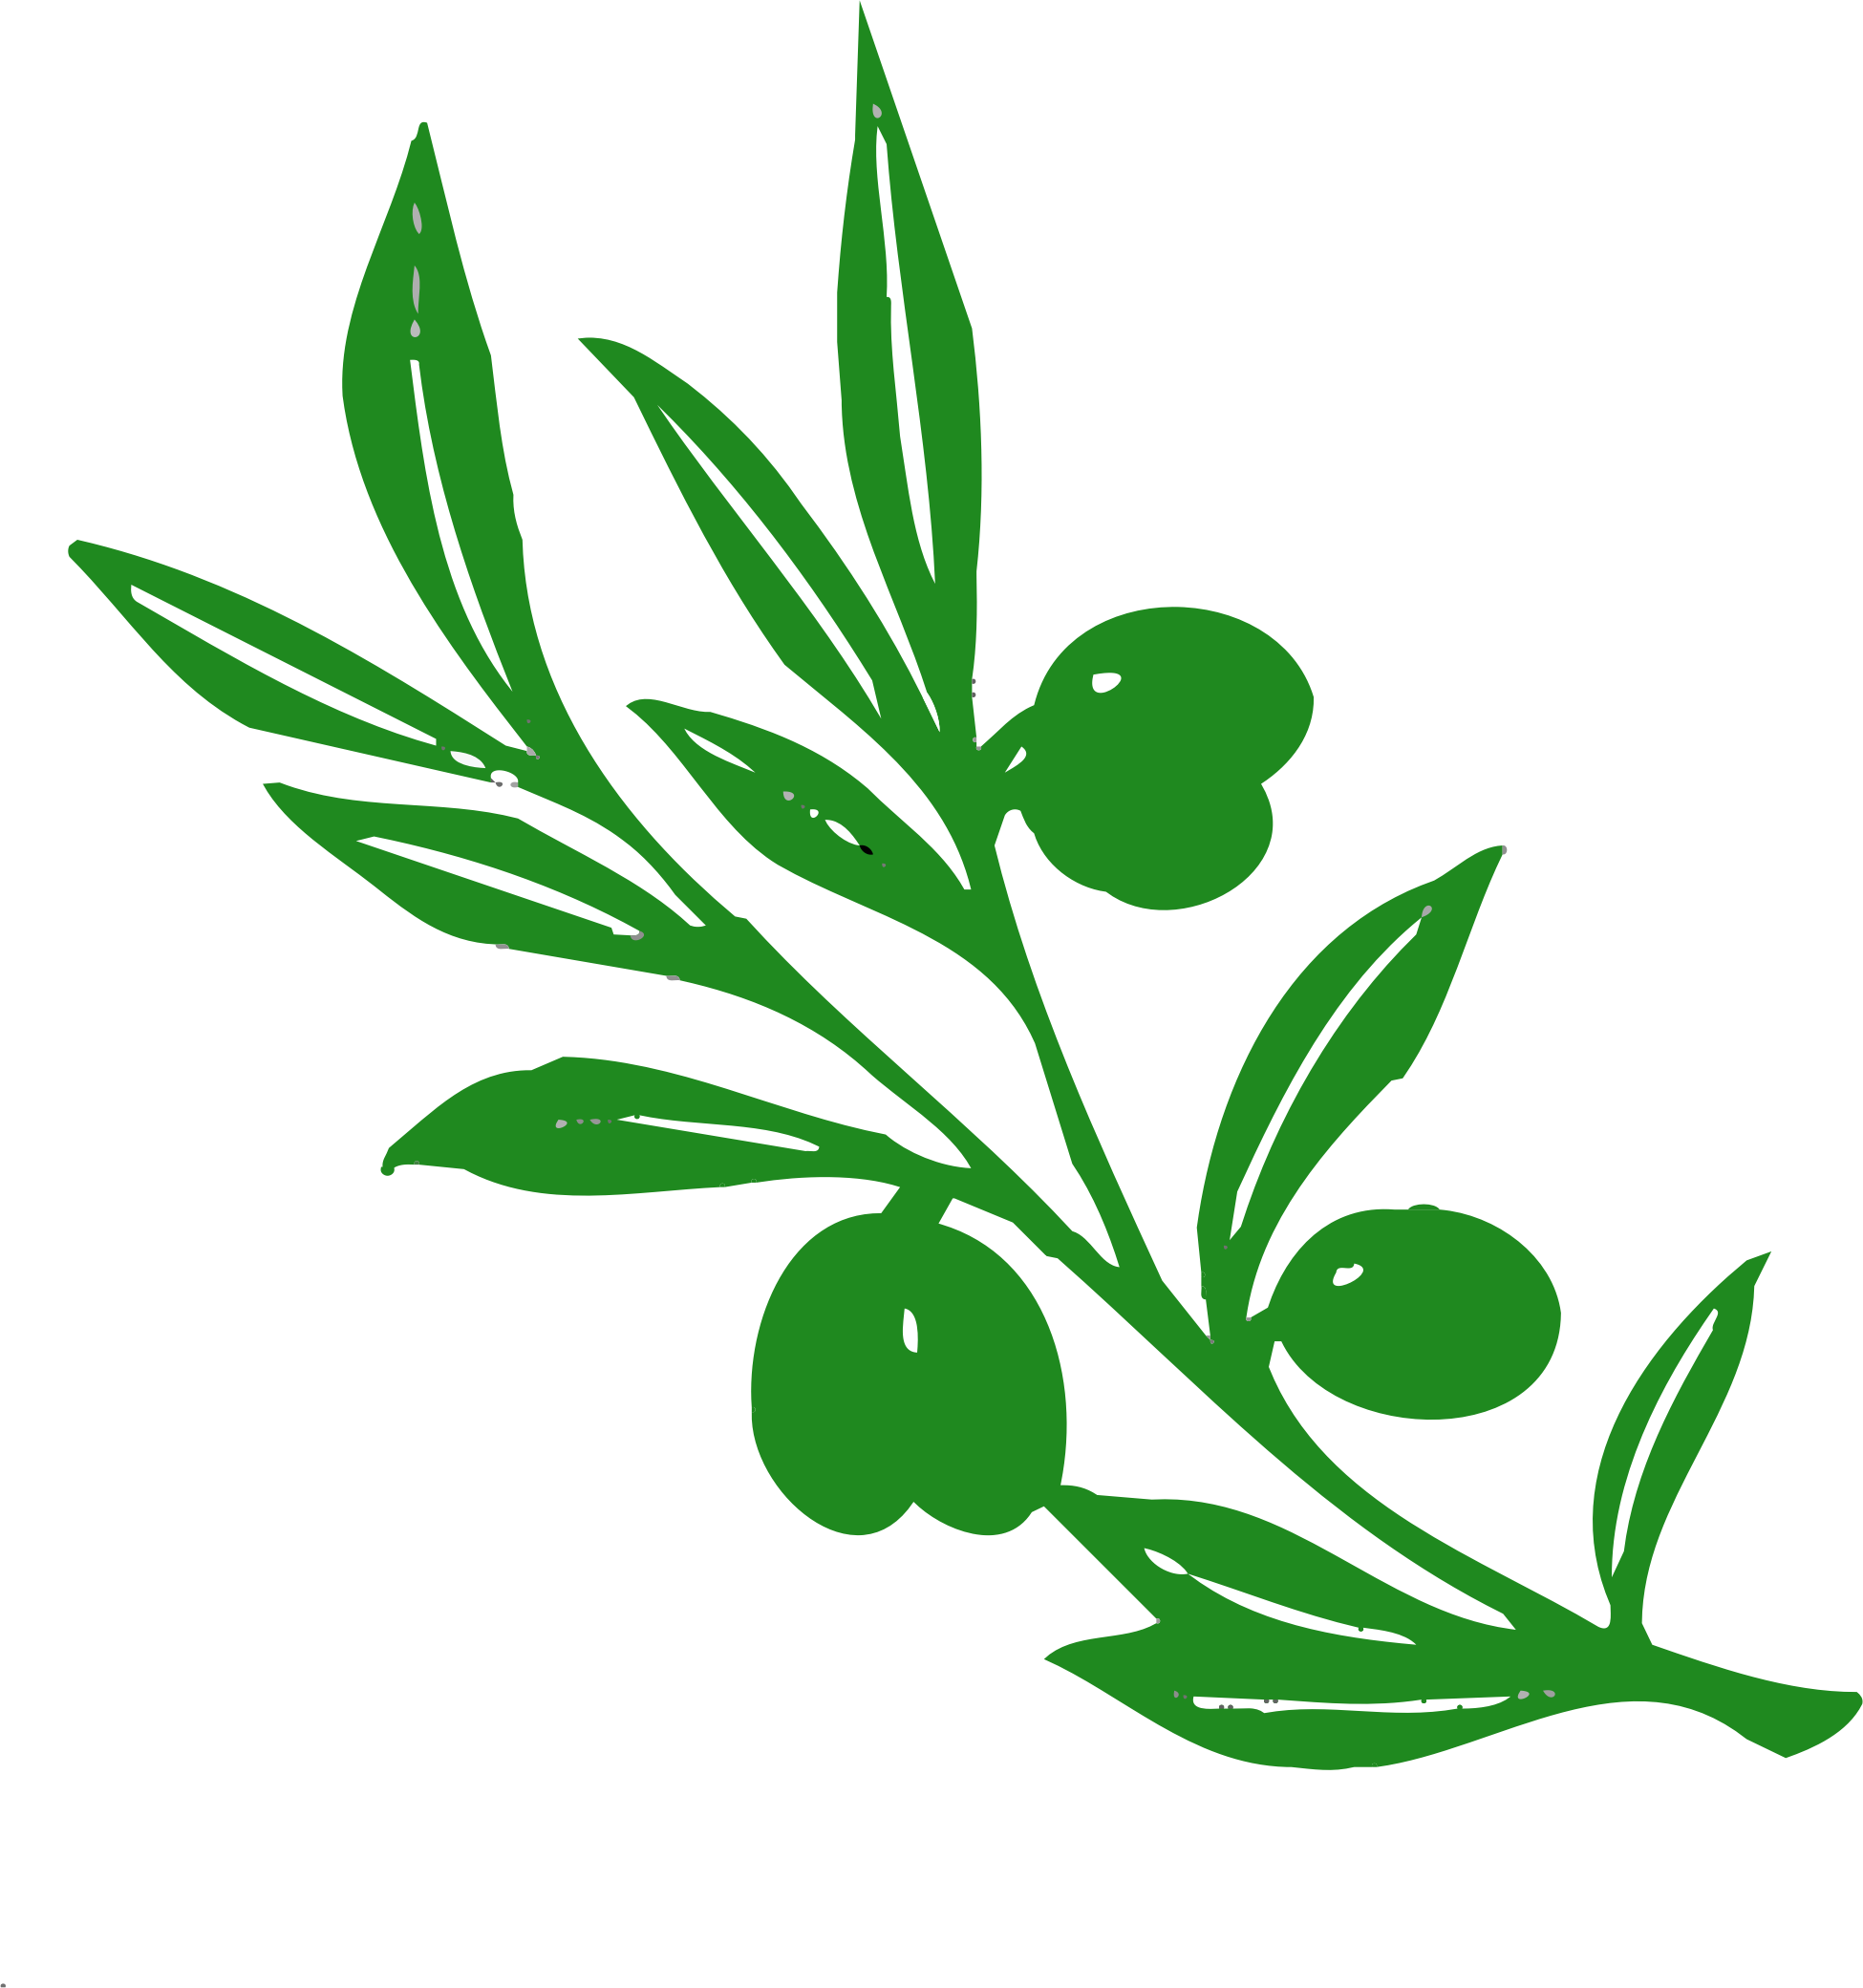 Olive clipart olive plant. Tree branch big image